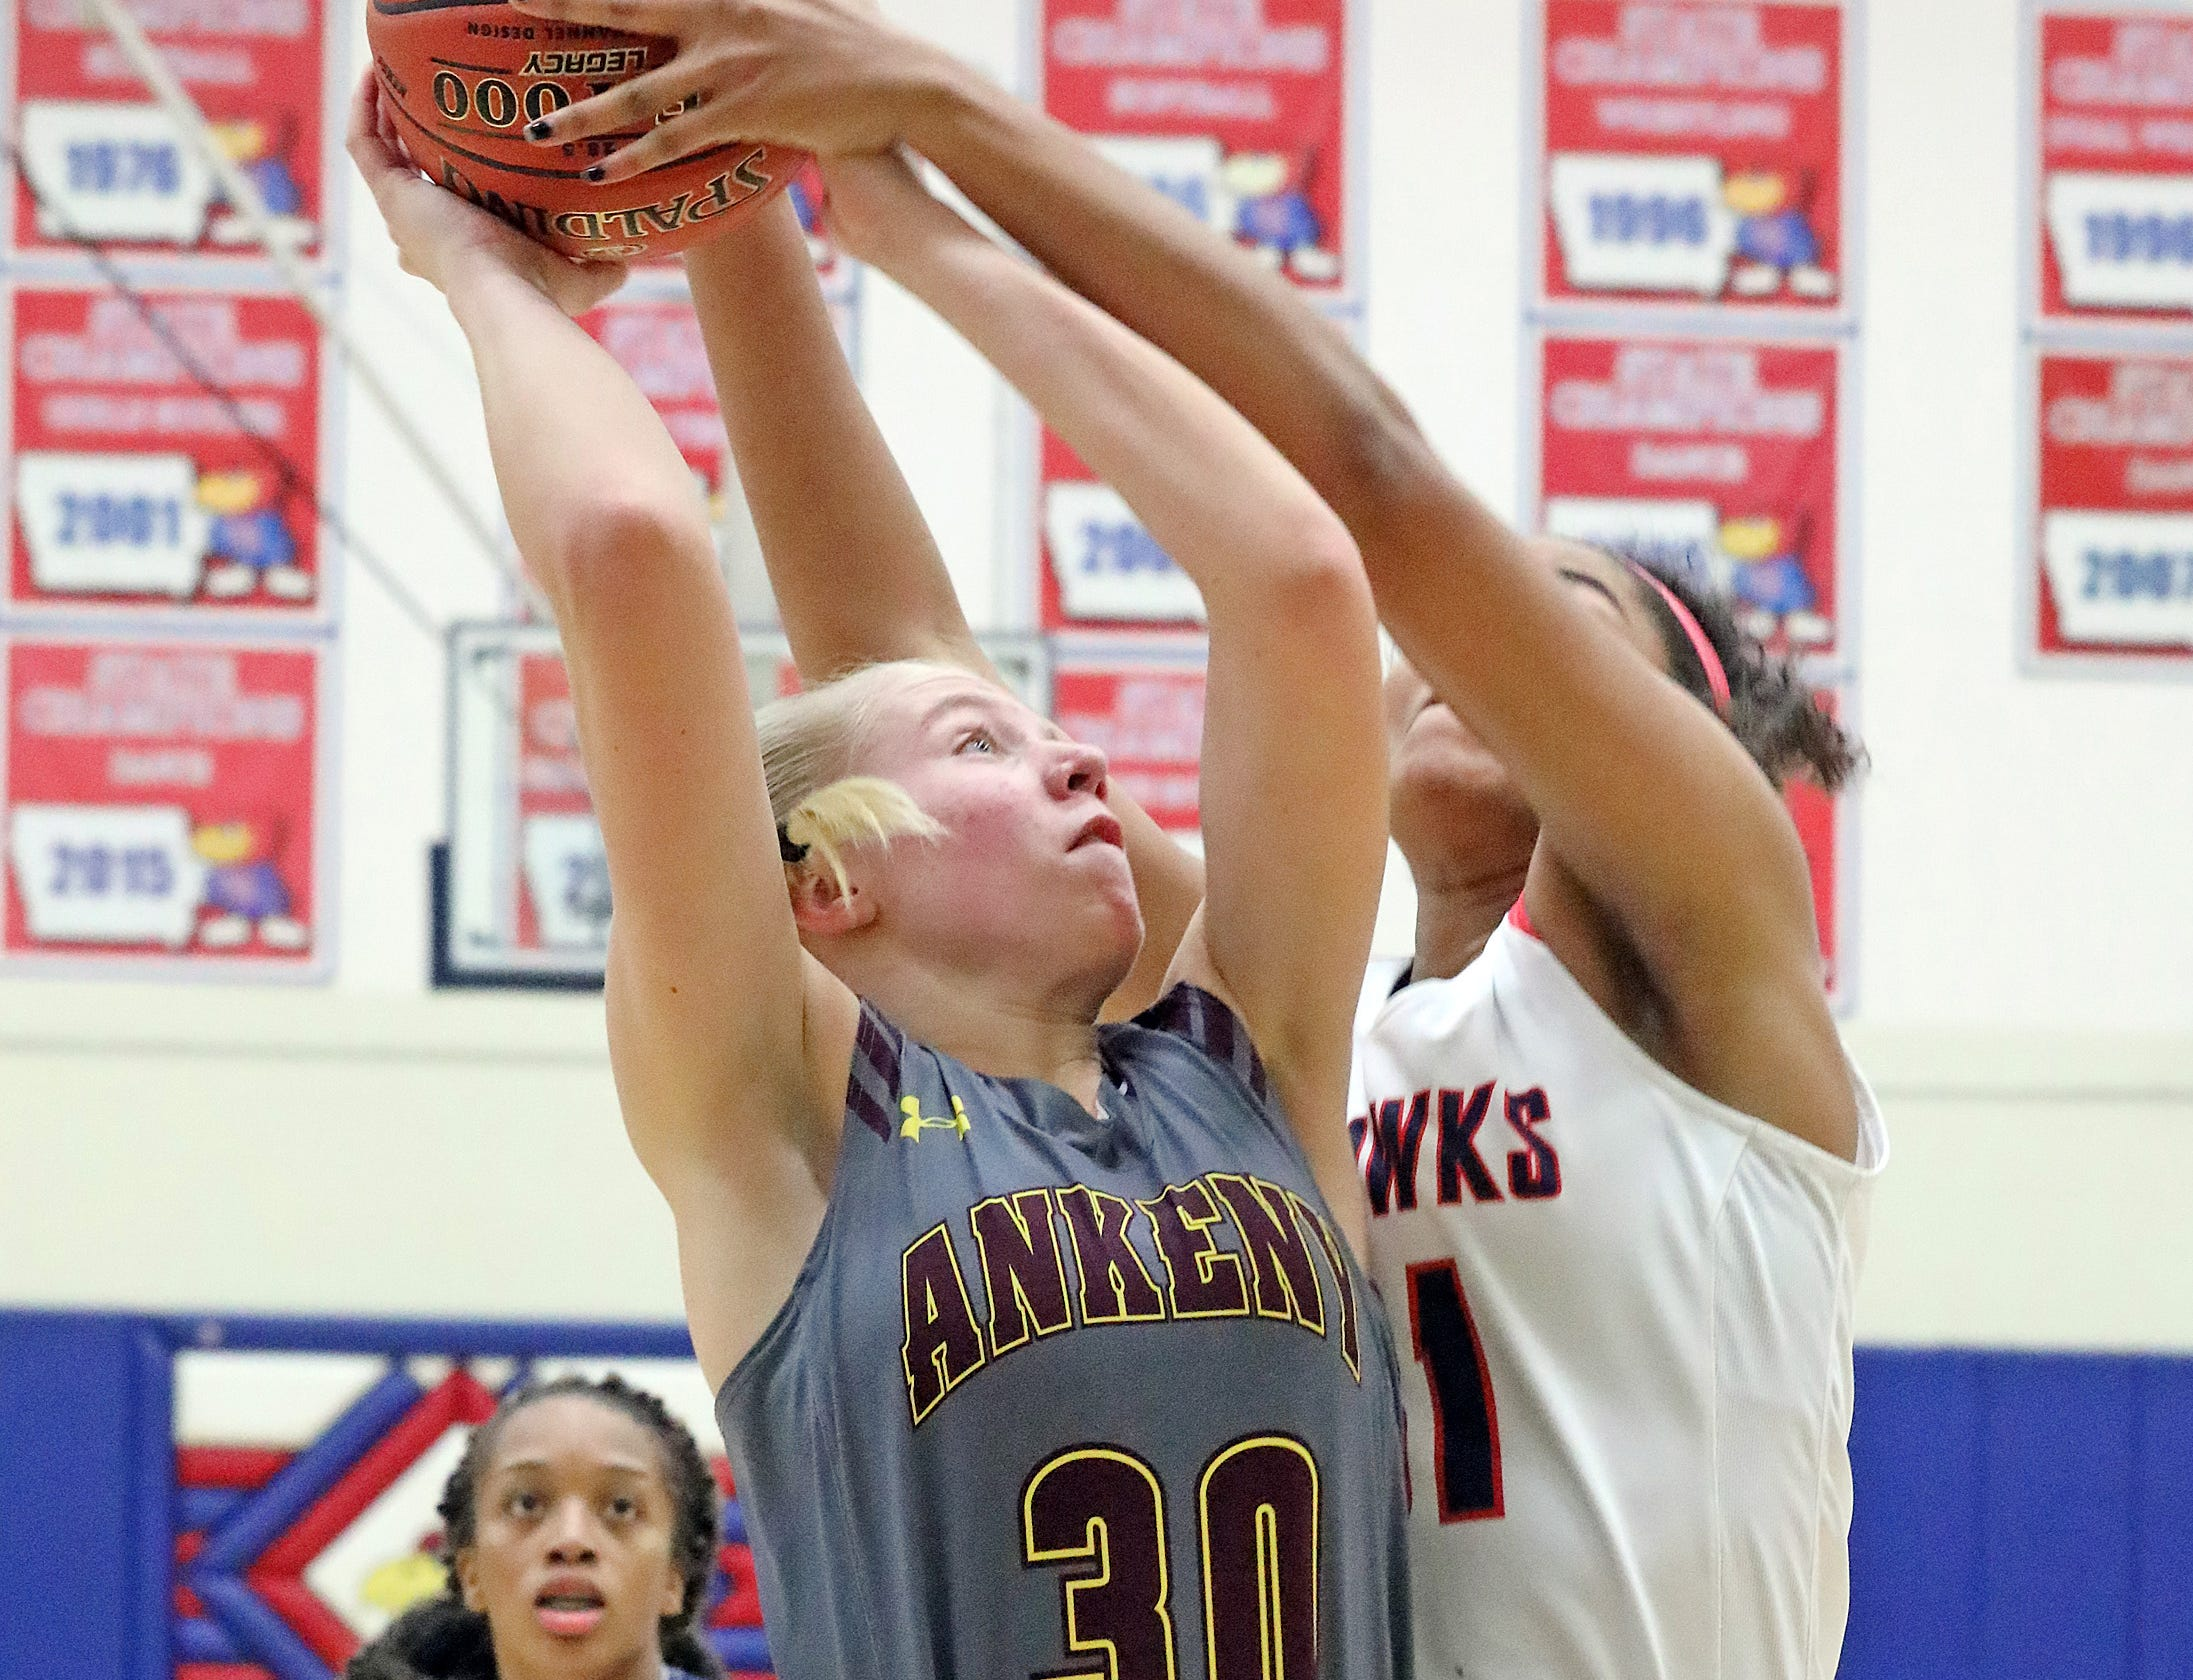 Ankeny sophomore Abby Johnson fights for a rebound as the Ankeny Hawkettes compete against the Urbandale J-Hawks in high school basketball on Friday, Dec. 14, 2018 at Urbandale High School. Ankeny won 46 to 40.